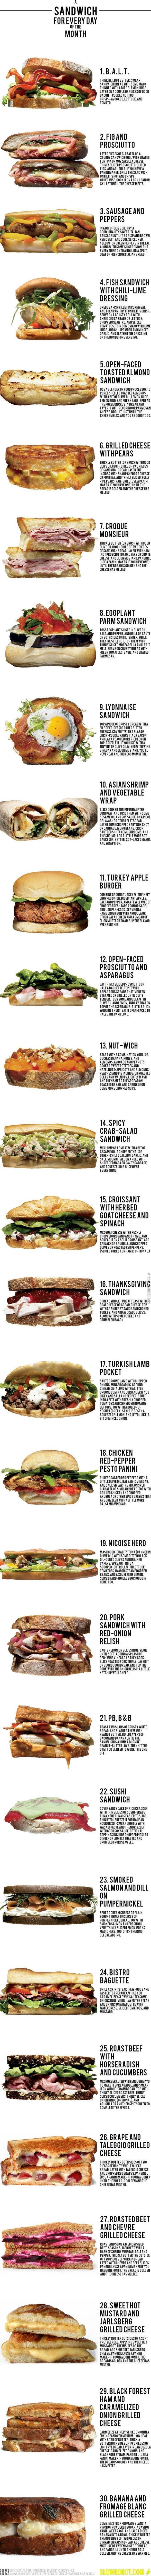 30 incredible sandwich recipes for every day of the month                                                                                                                                                                                 More